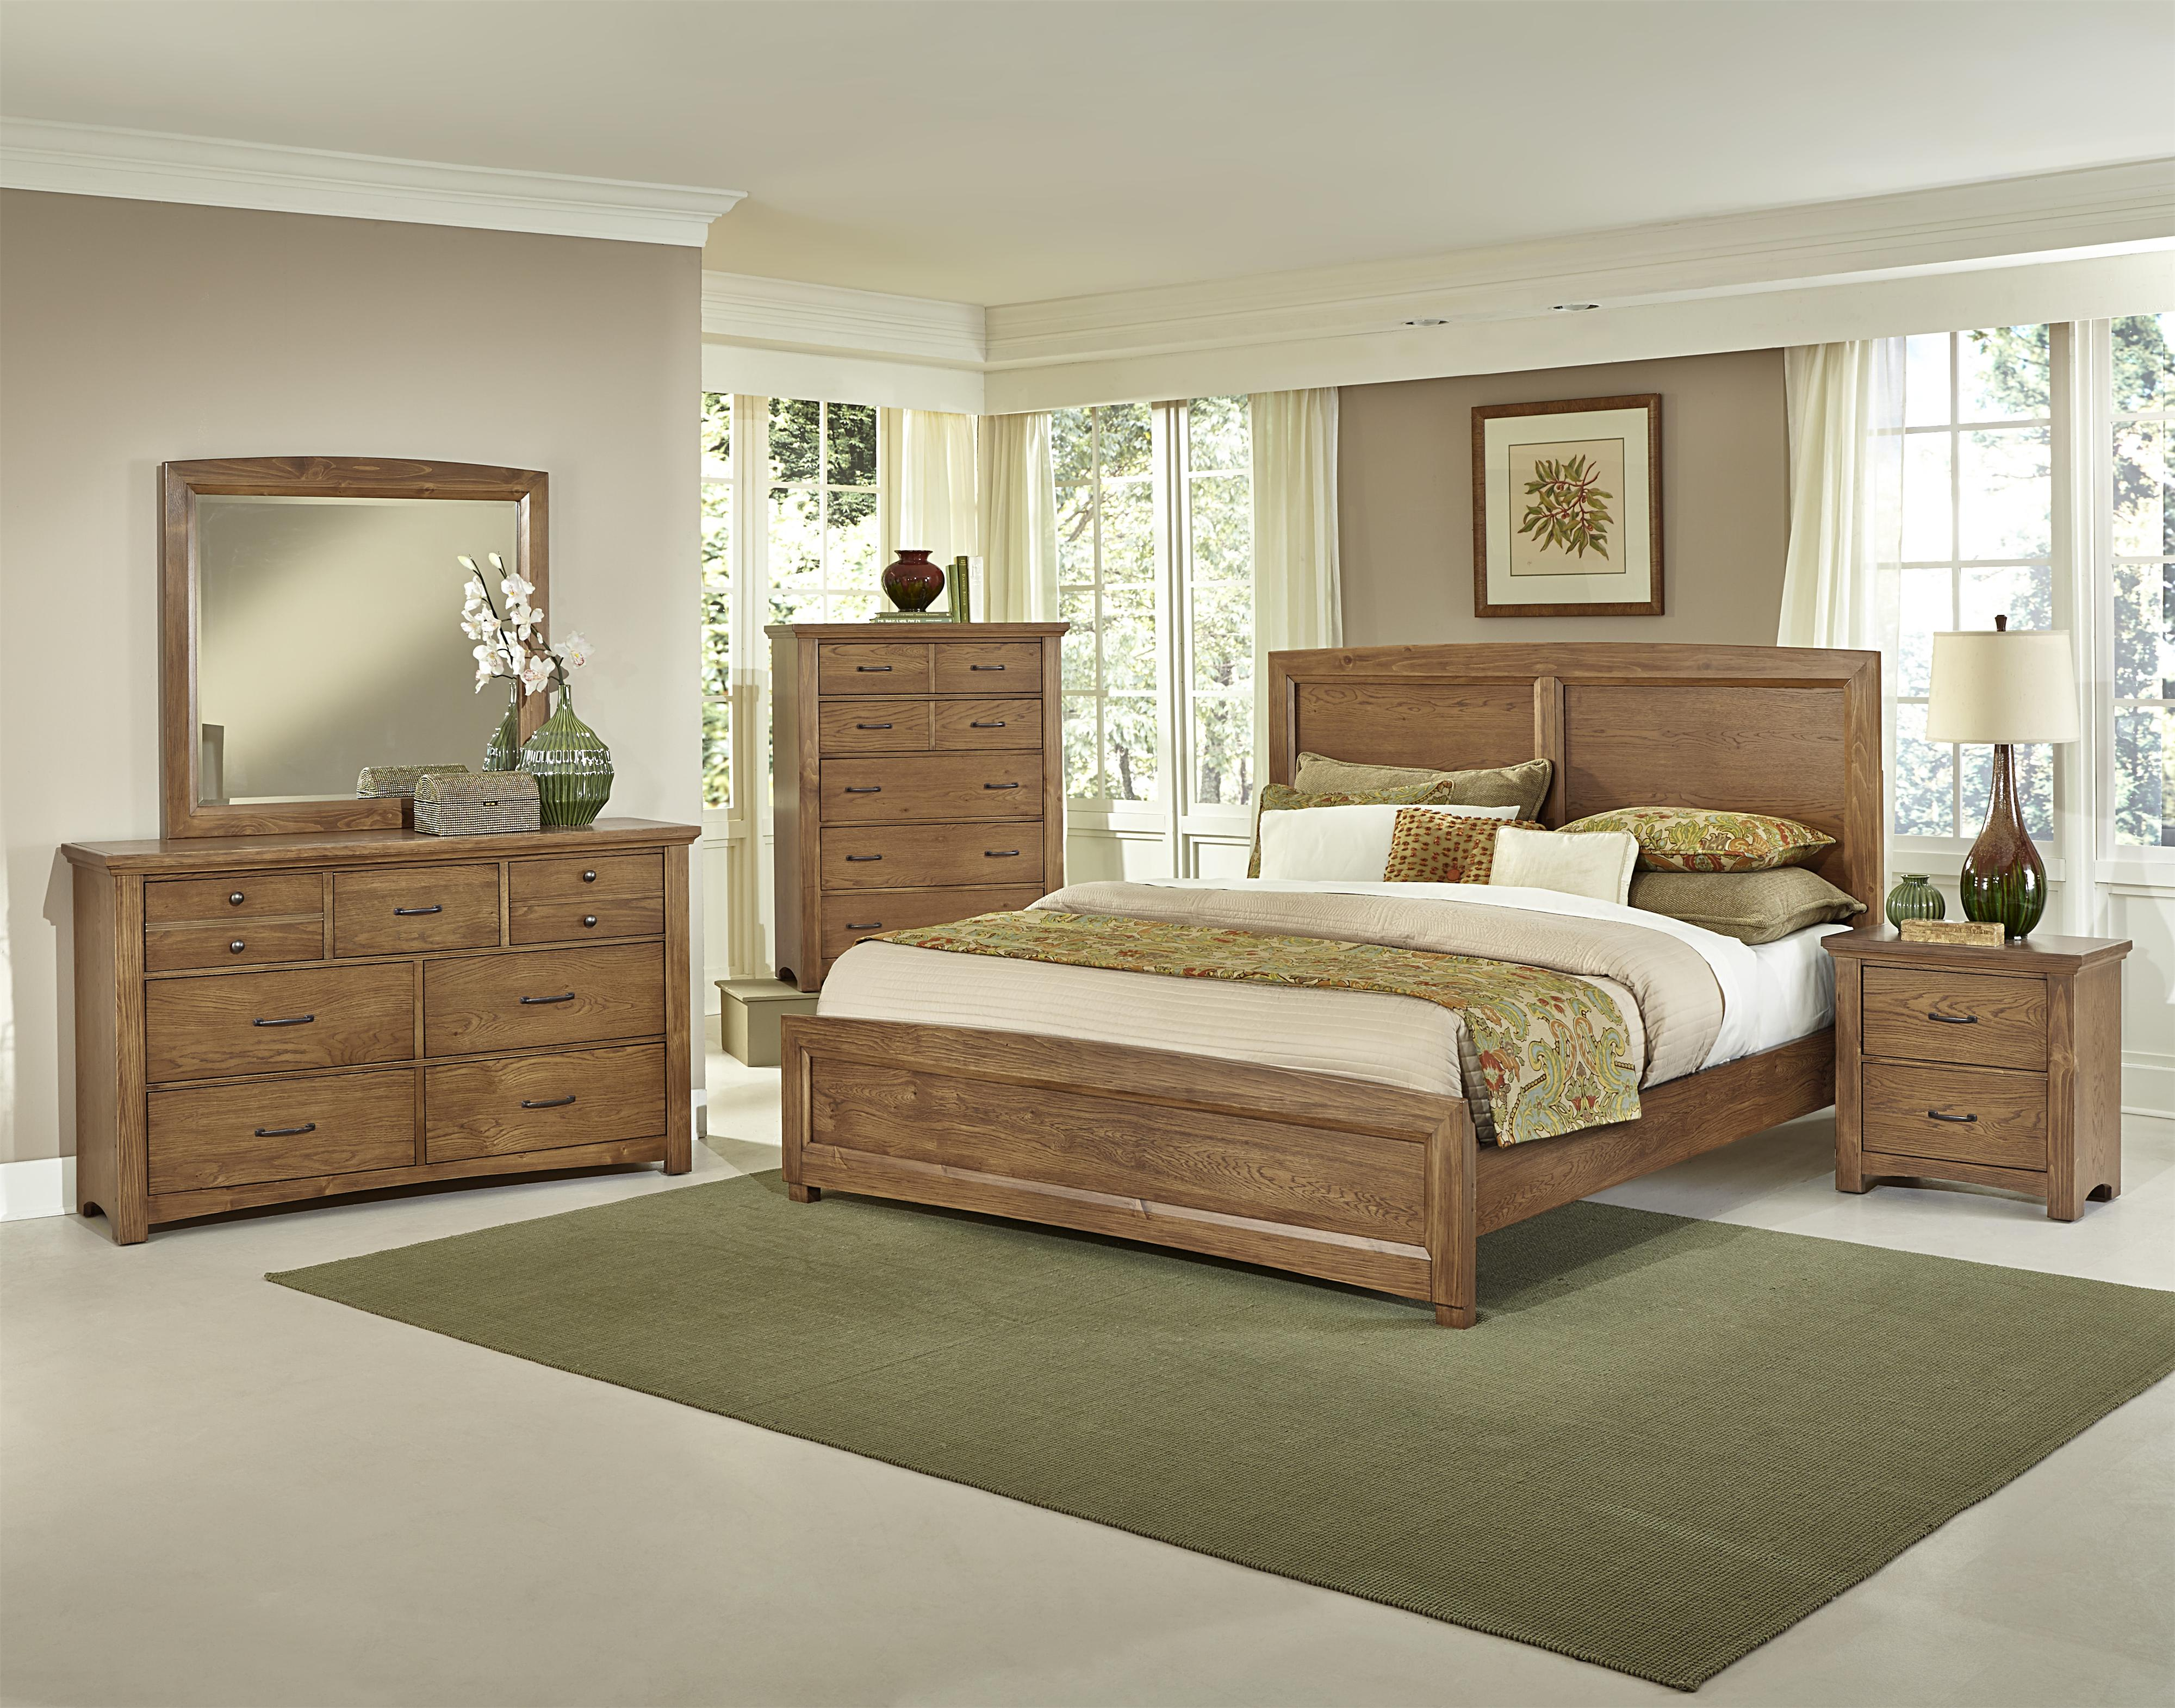 Surprising Transitions Queen Bedroom Group By Vaughan Bassett At Dunk Bright Furniture Interior Design Ideas Tzicisoteloinfo